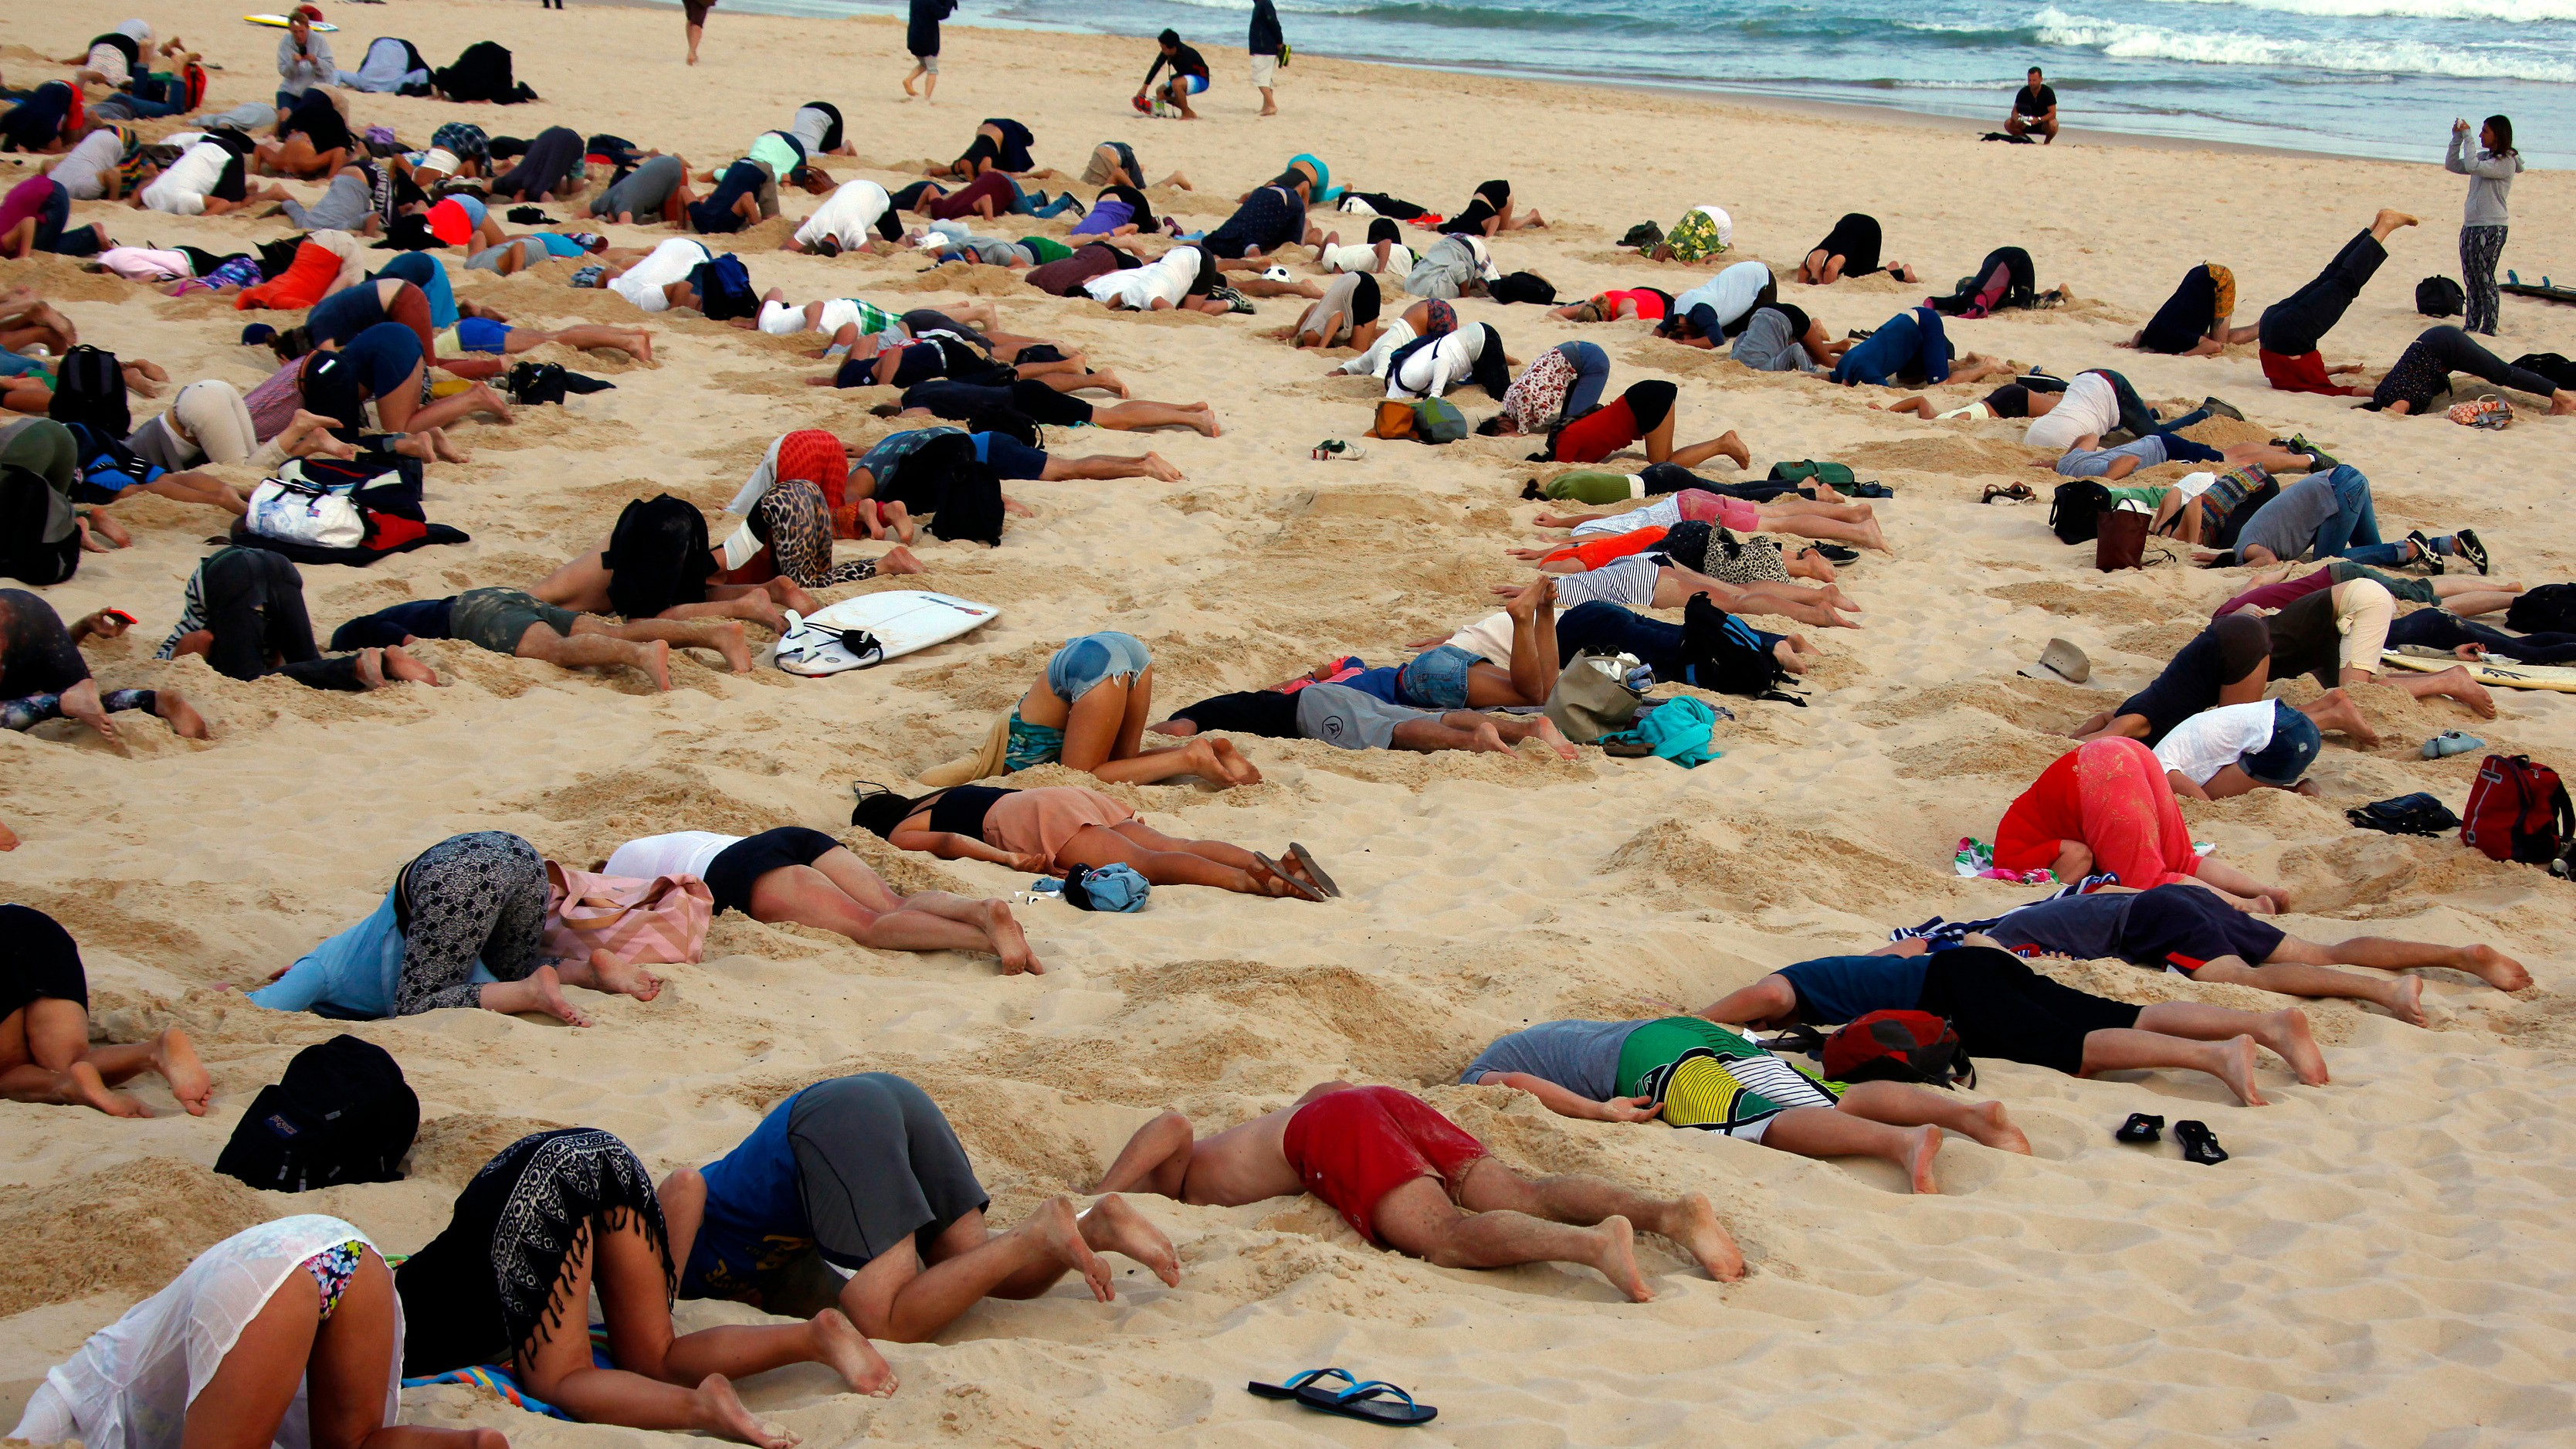 400 People Bury Their Heads in the Sand to Protest Australian Prime Minister's Stance on Climate ...